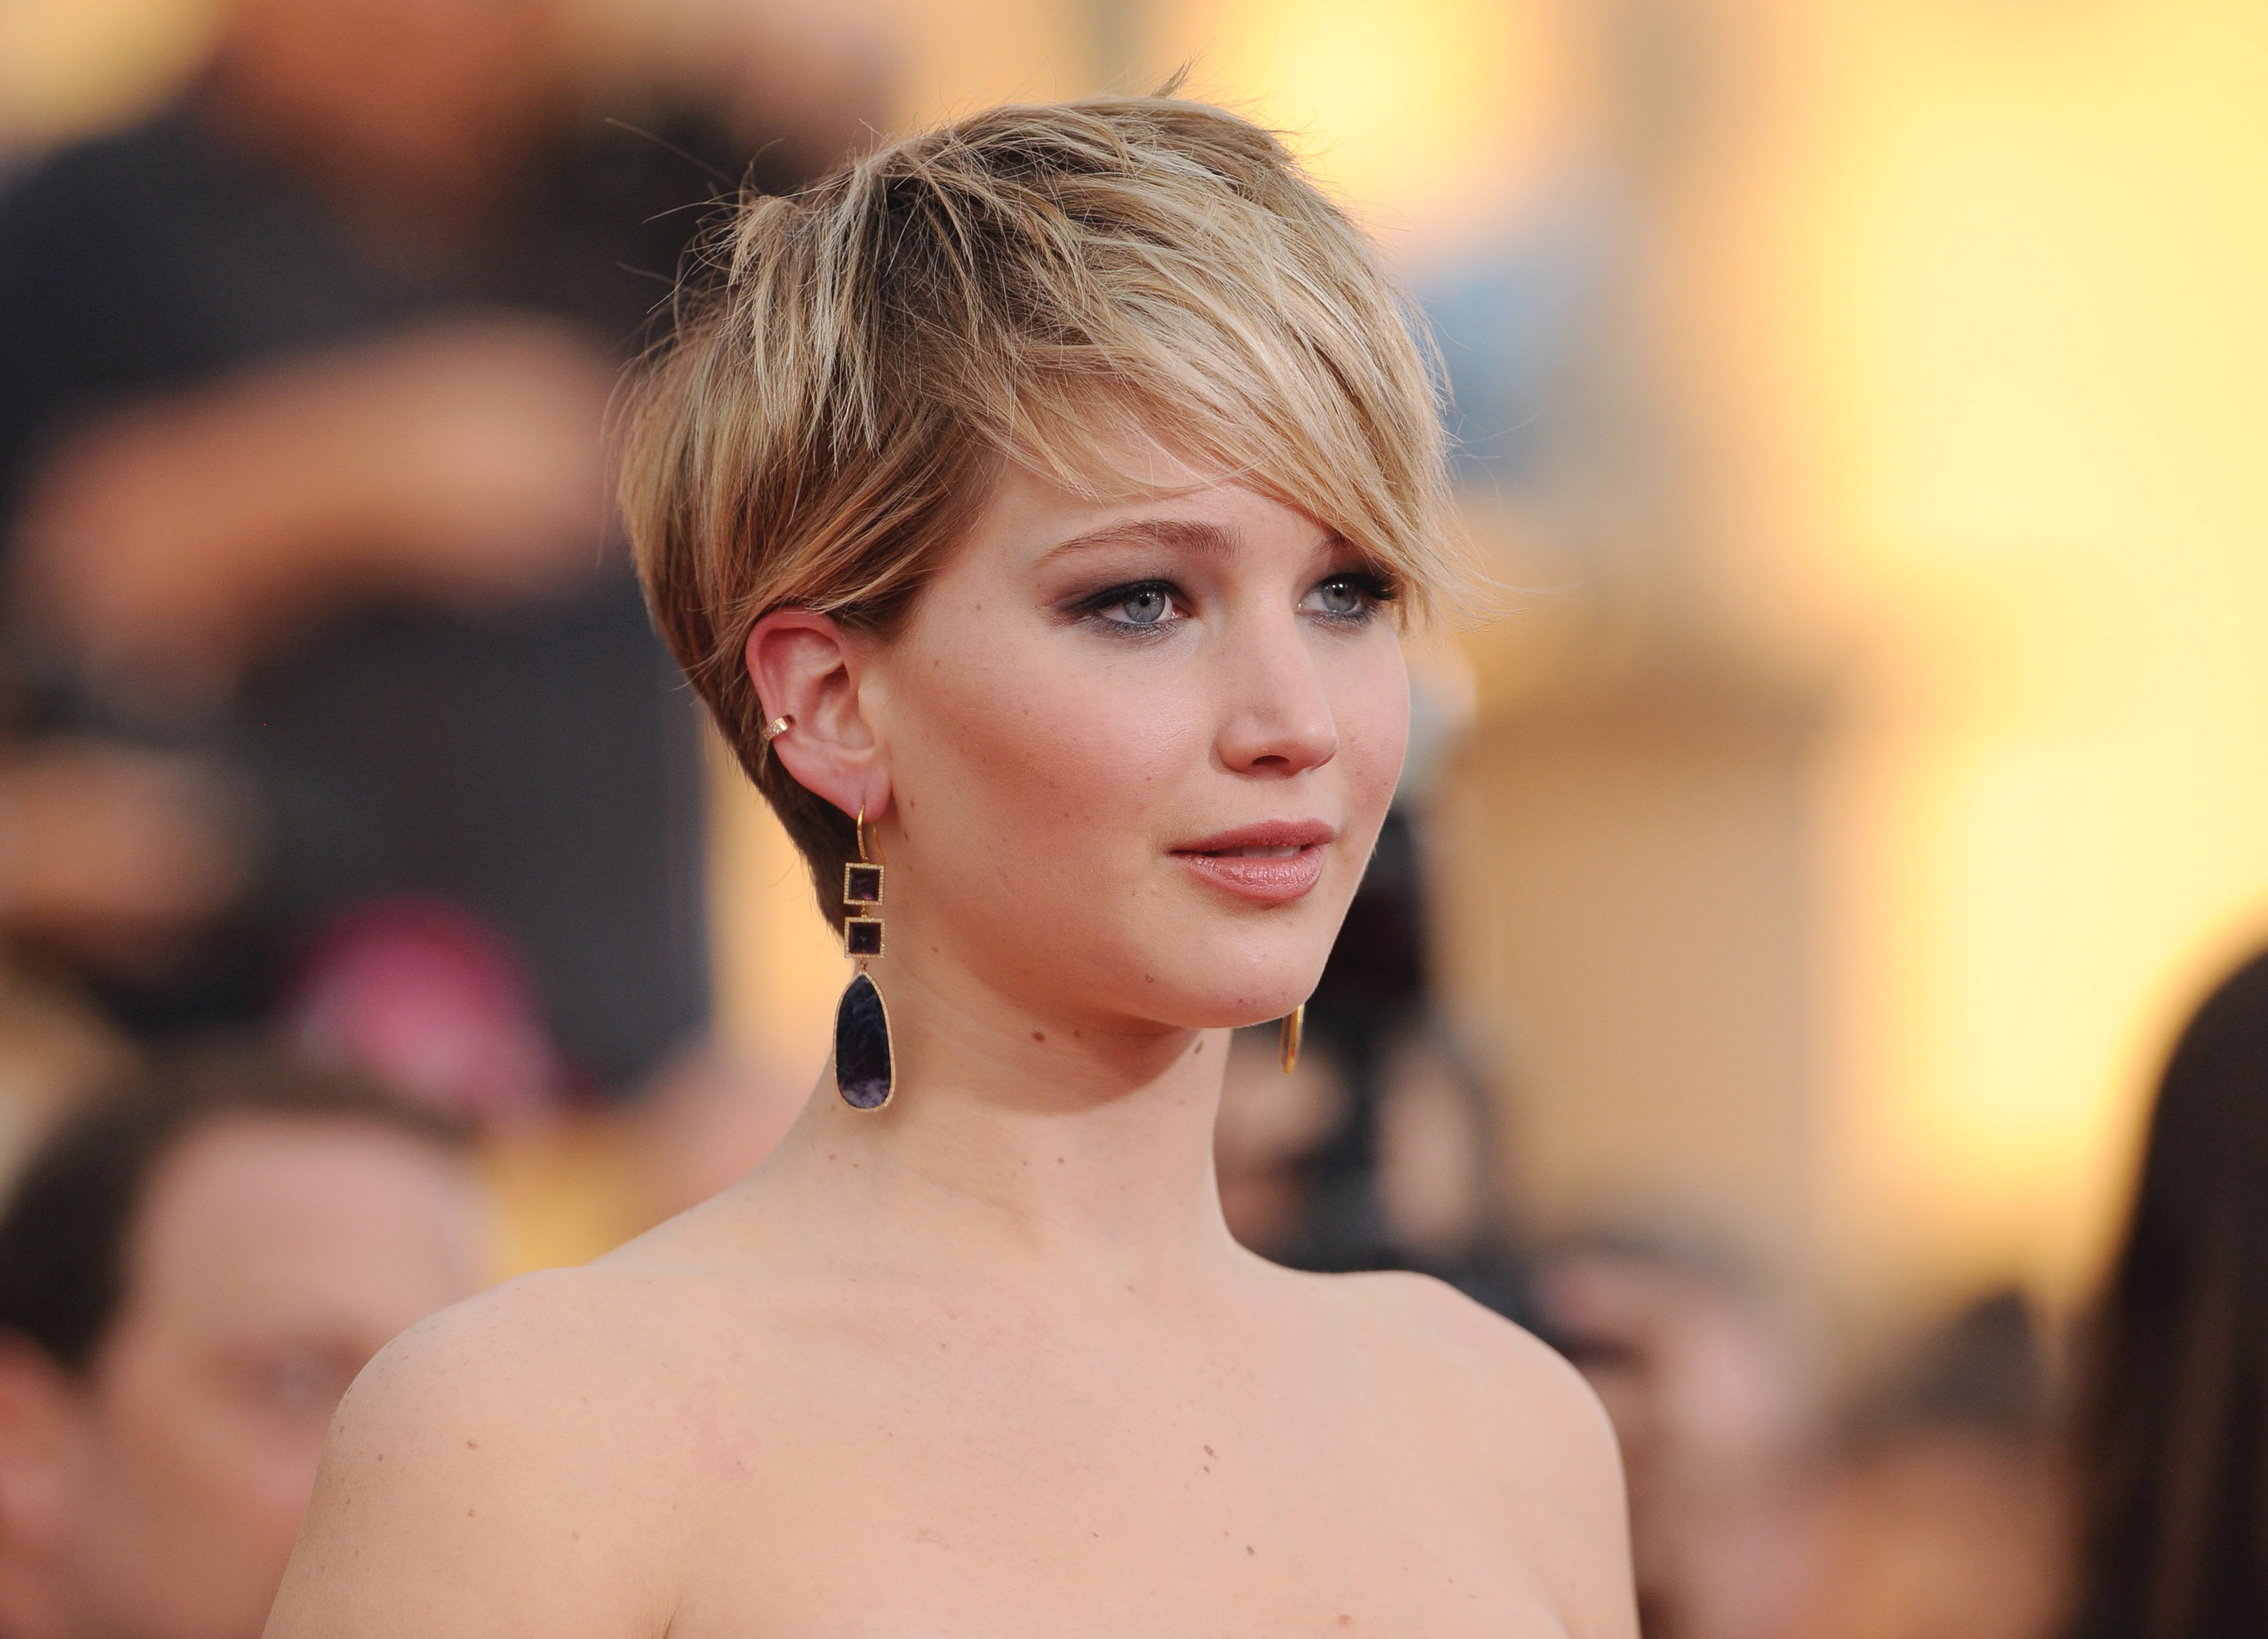 35 Fabulous Short Haircuts For Thick Hair In Short Haircuts Bobs Thick Hair (View 15 of 25)